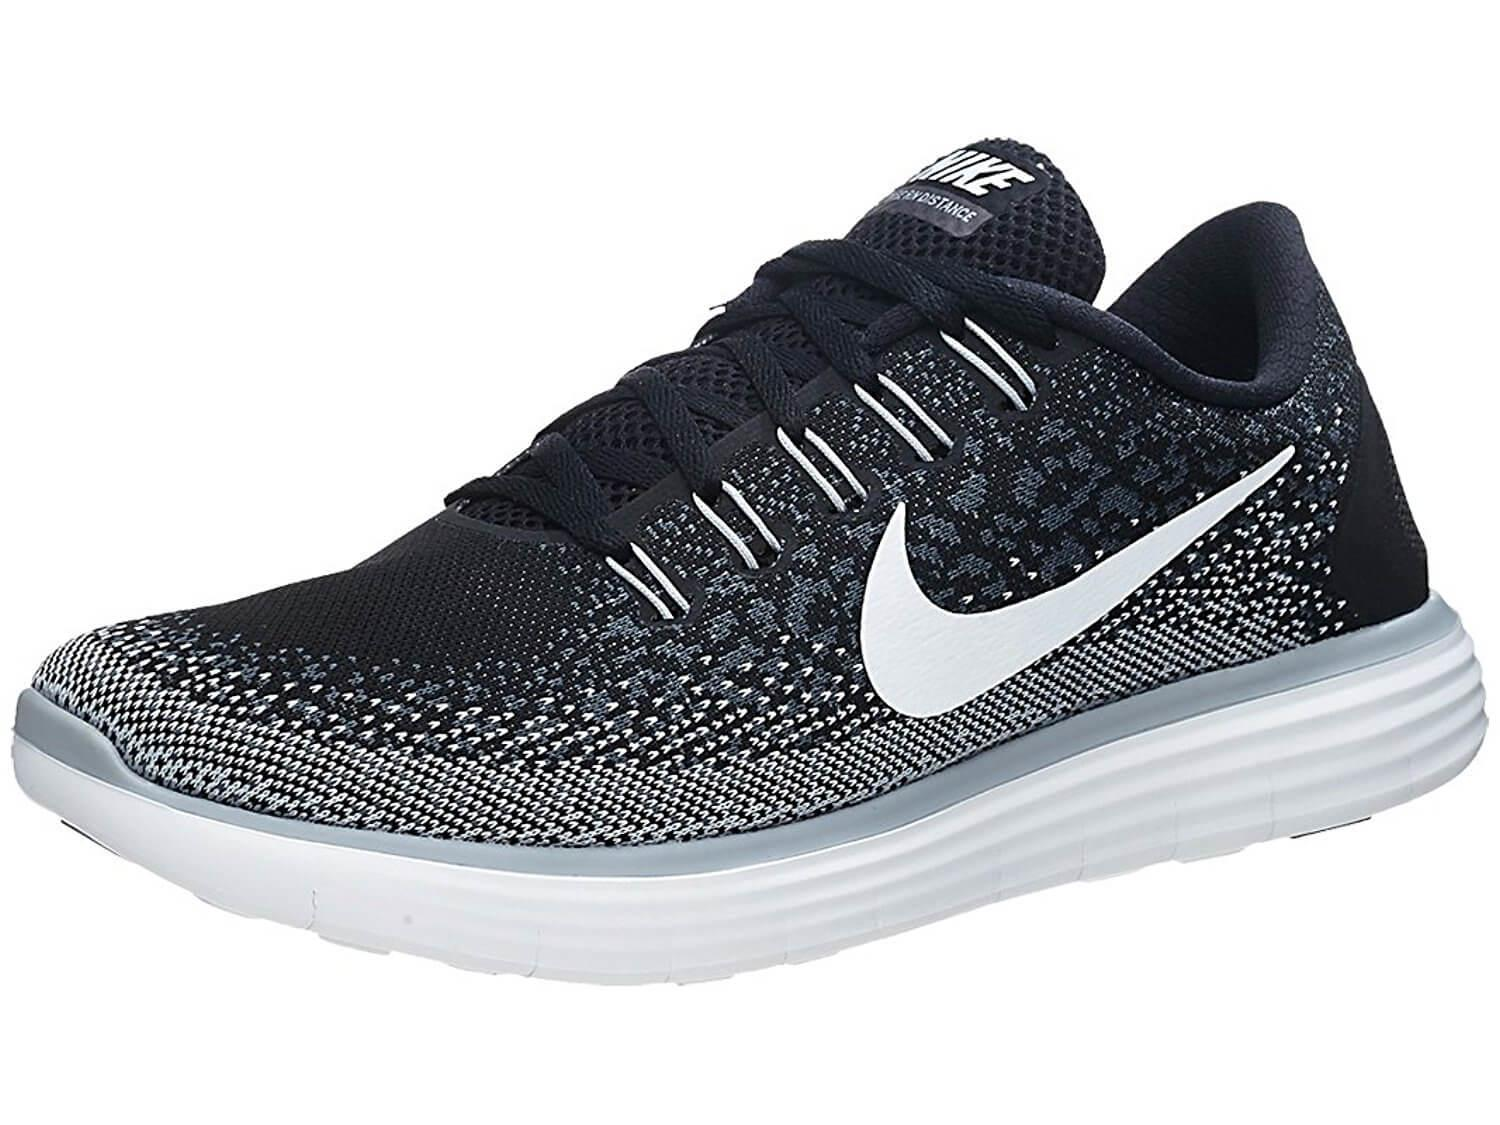 bf343539fede89 The Nike Free RN Distance is an excellent all-around running shoe.